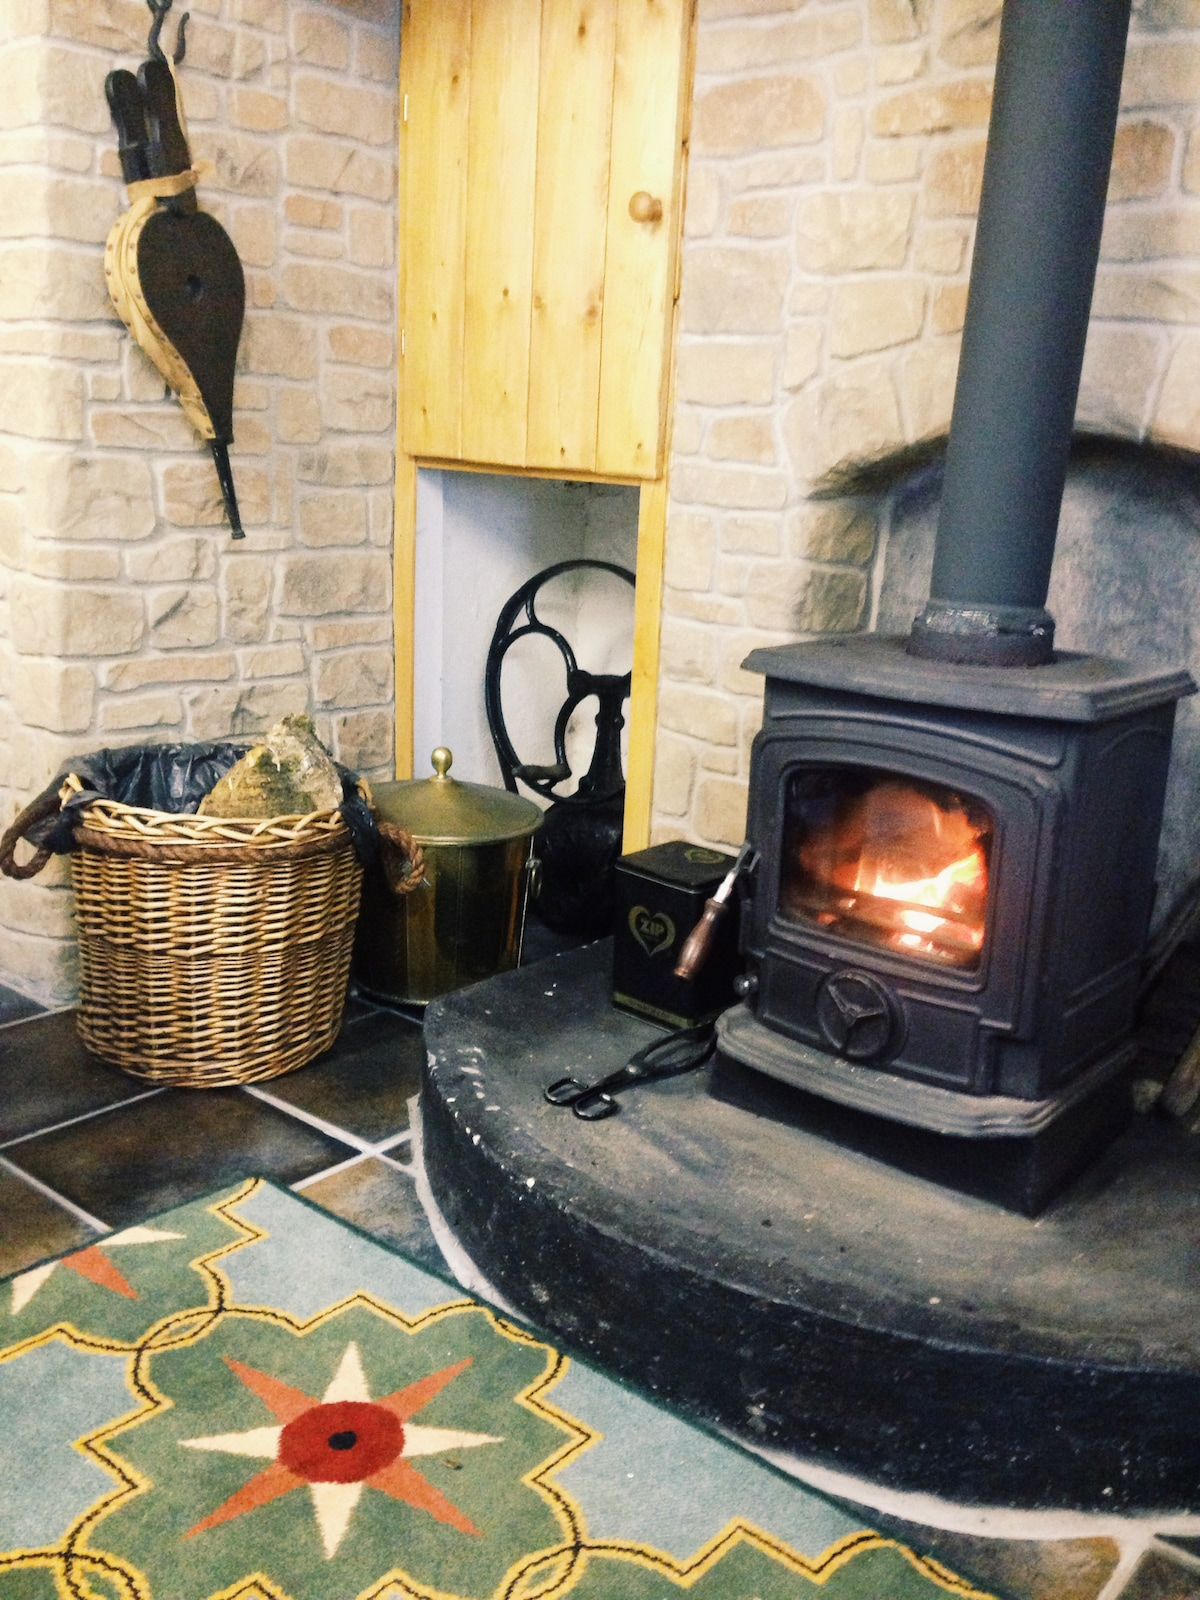 The warm stove is crackling... :)